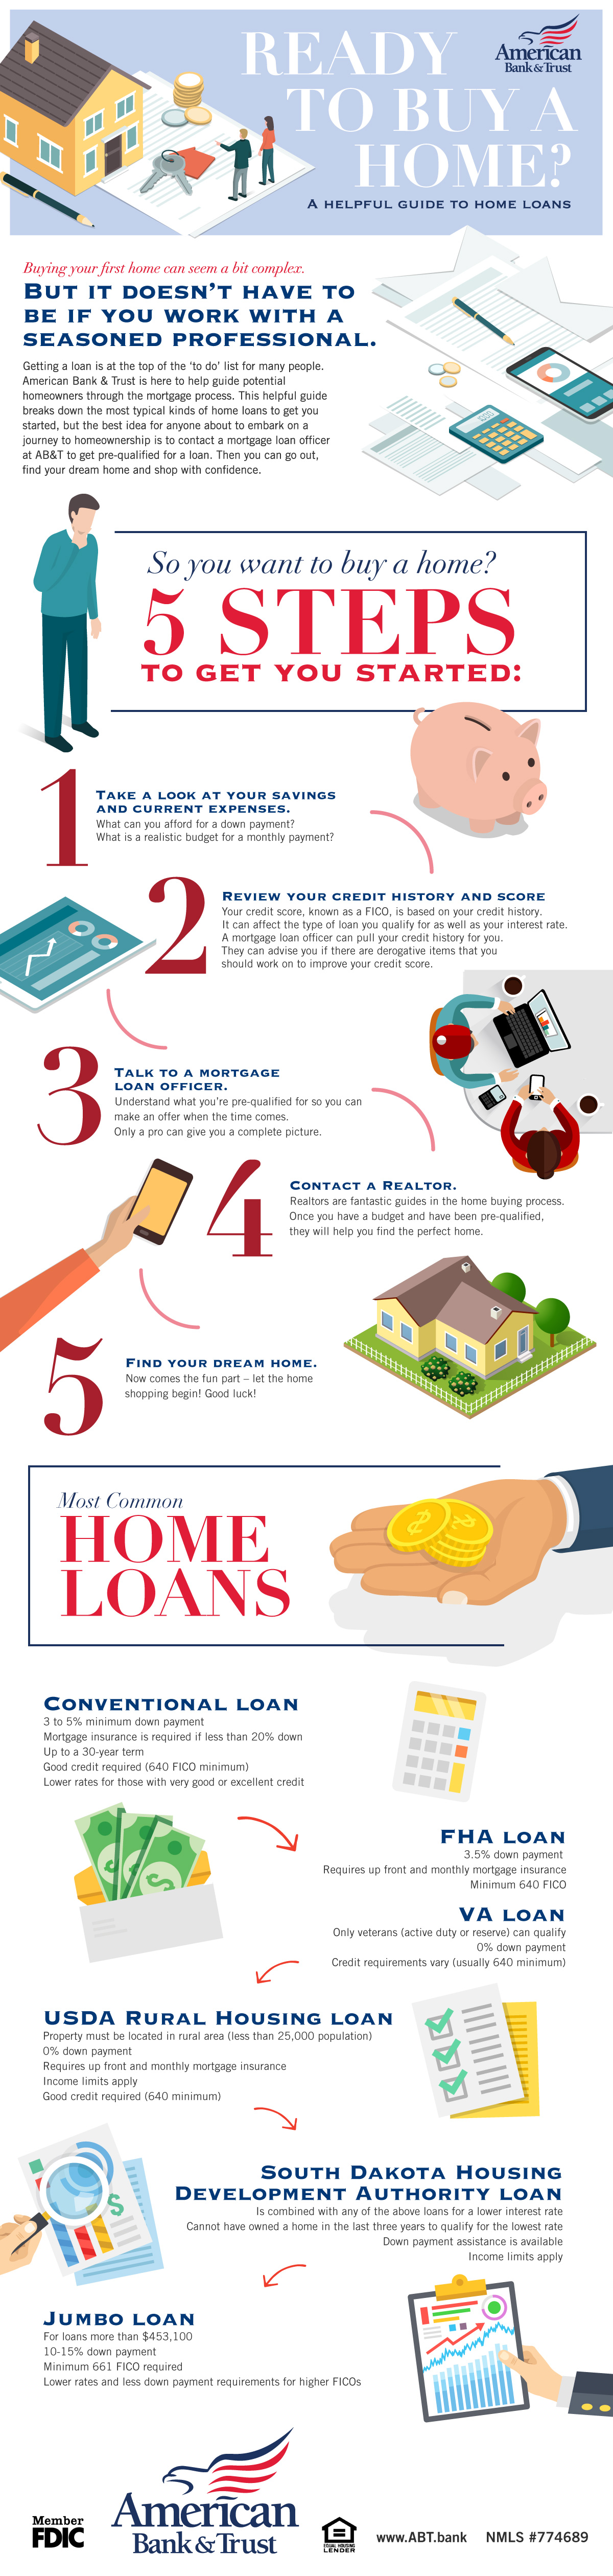 A helpful guide to home loans